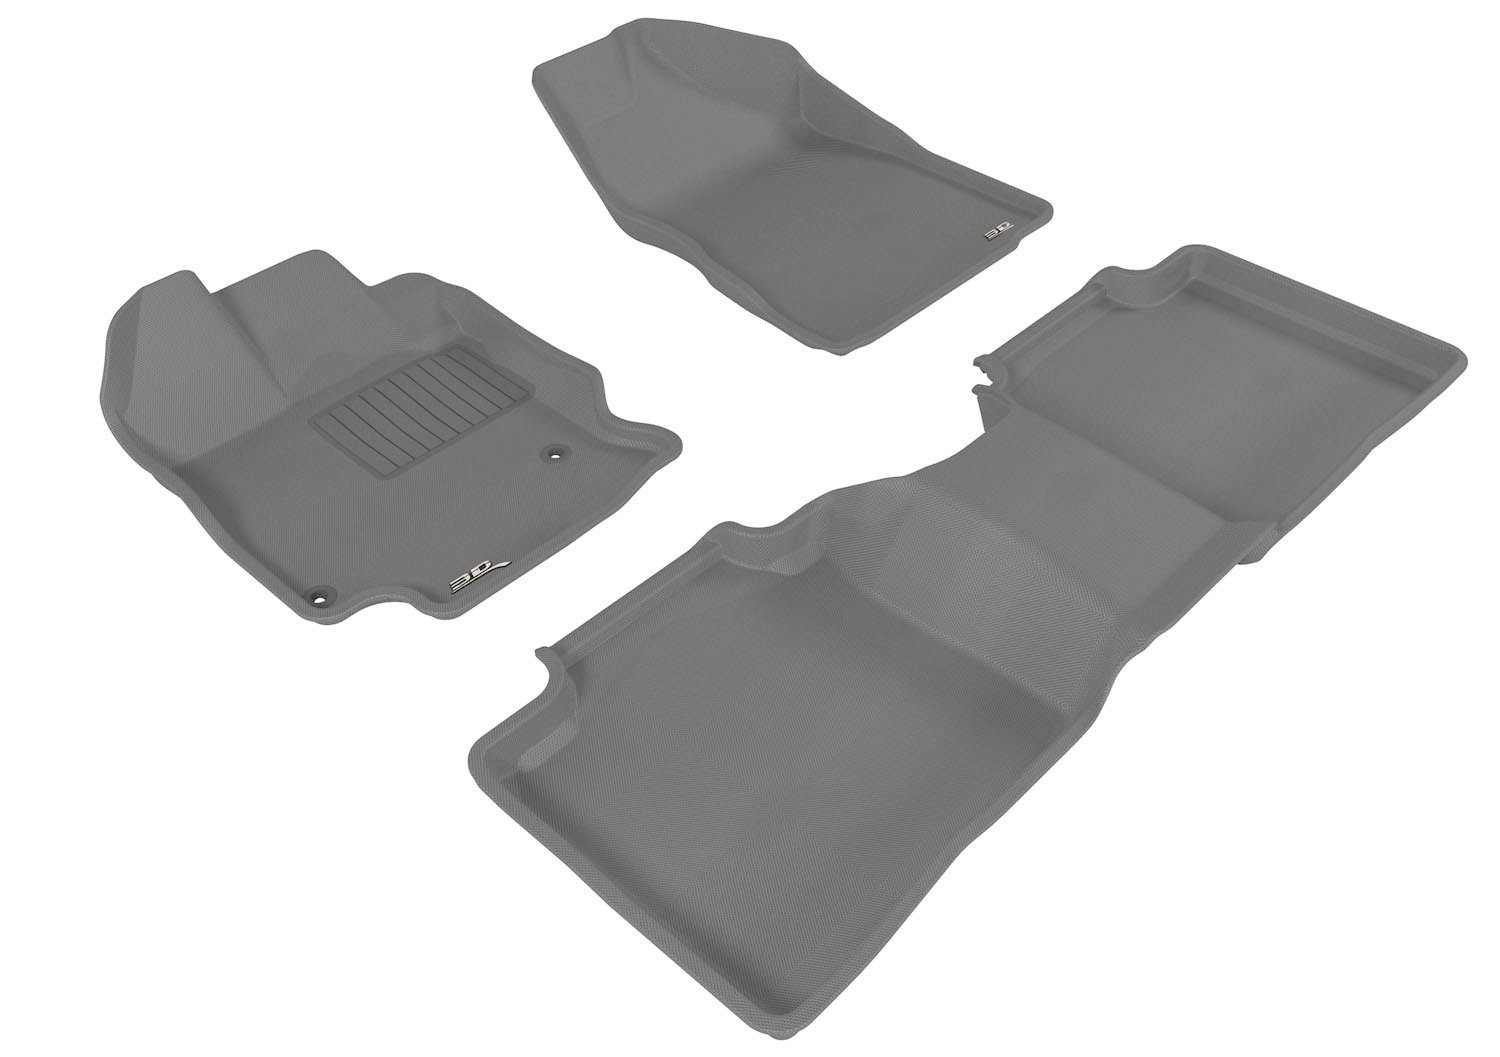 Kagu Rubber 3D MAXpider Front Row Custom Fit All-Weather Floor Mat for Select Toyota Venza Models Black